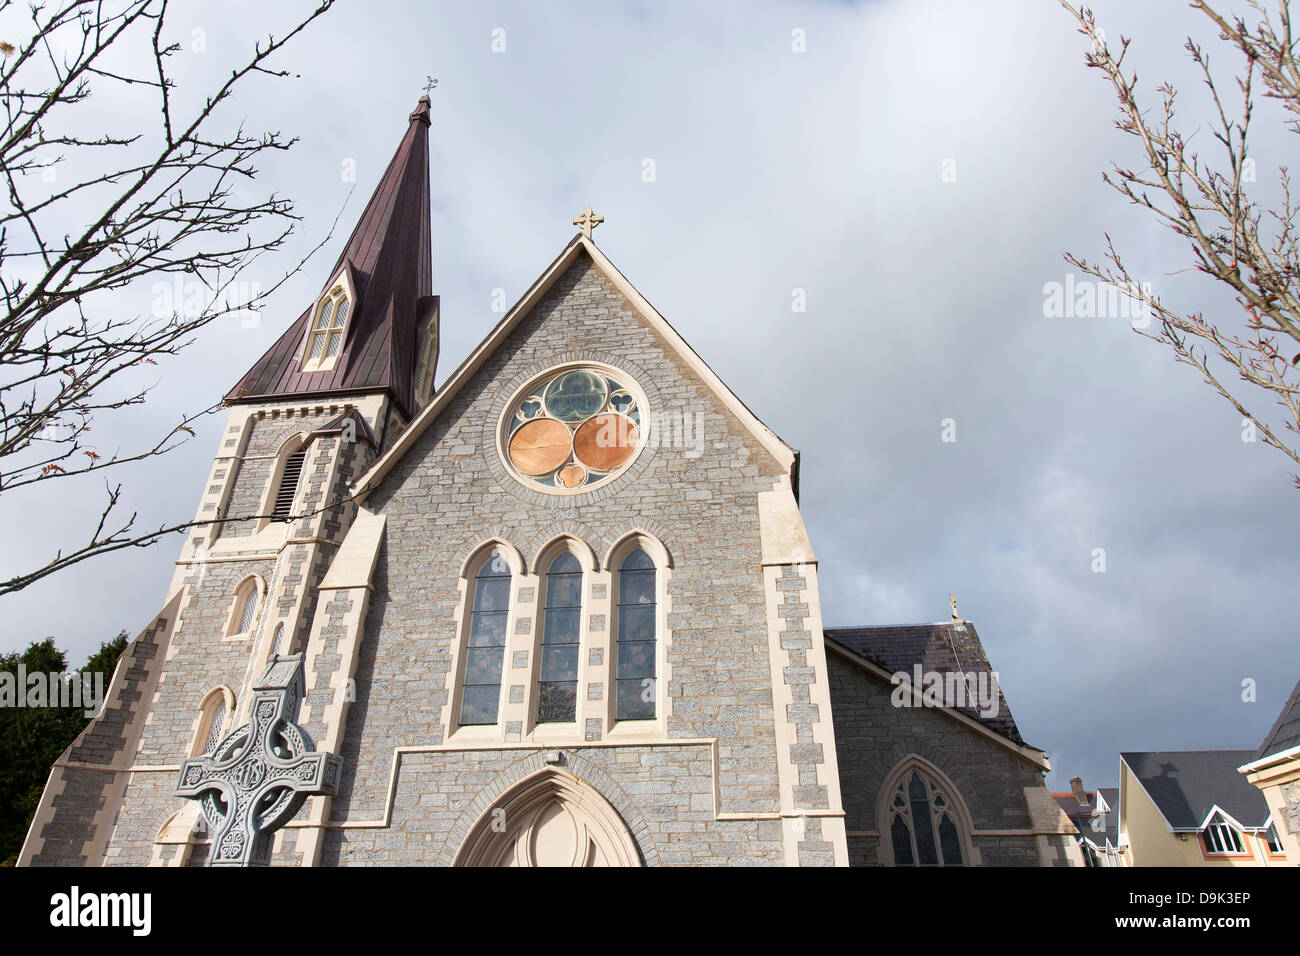 Image result for royalty free images people leaving the church